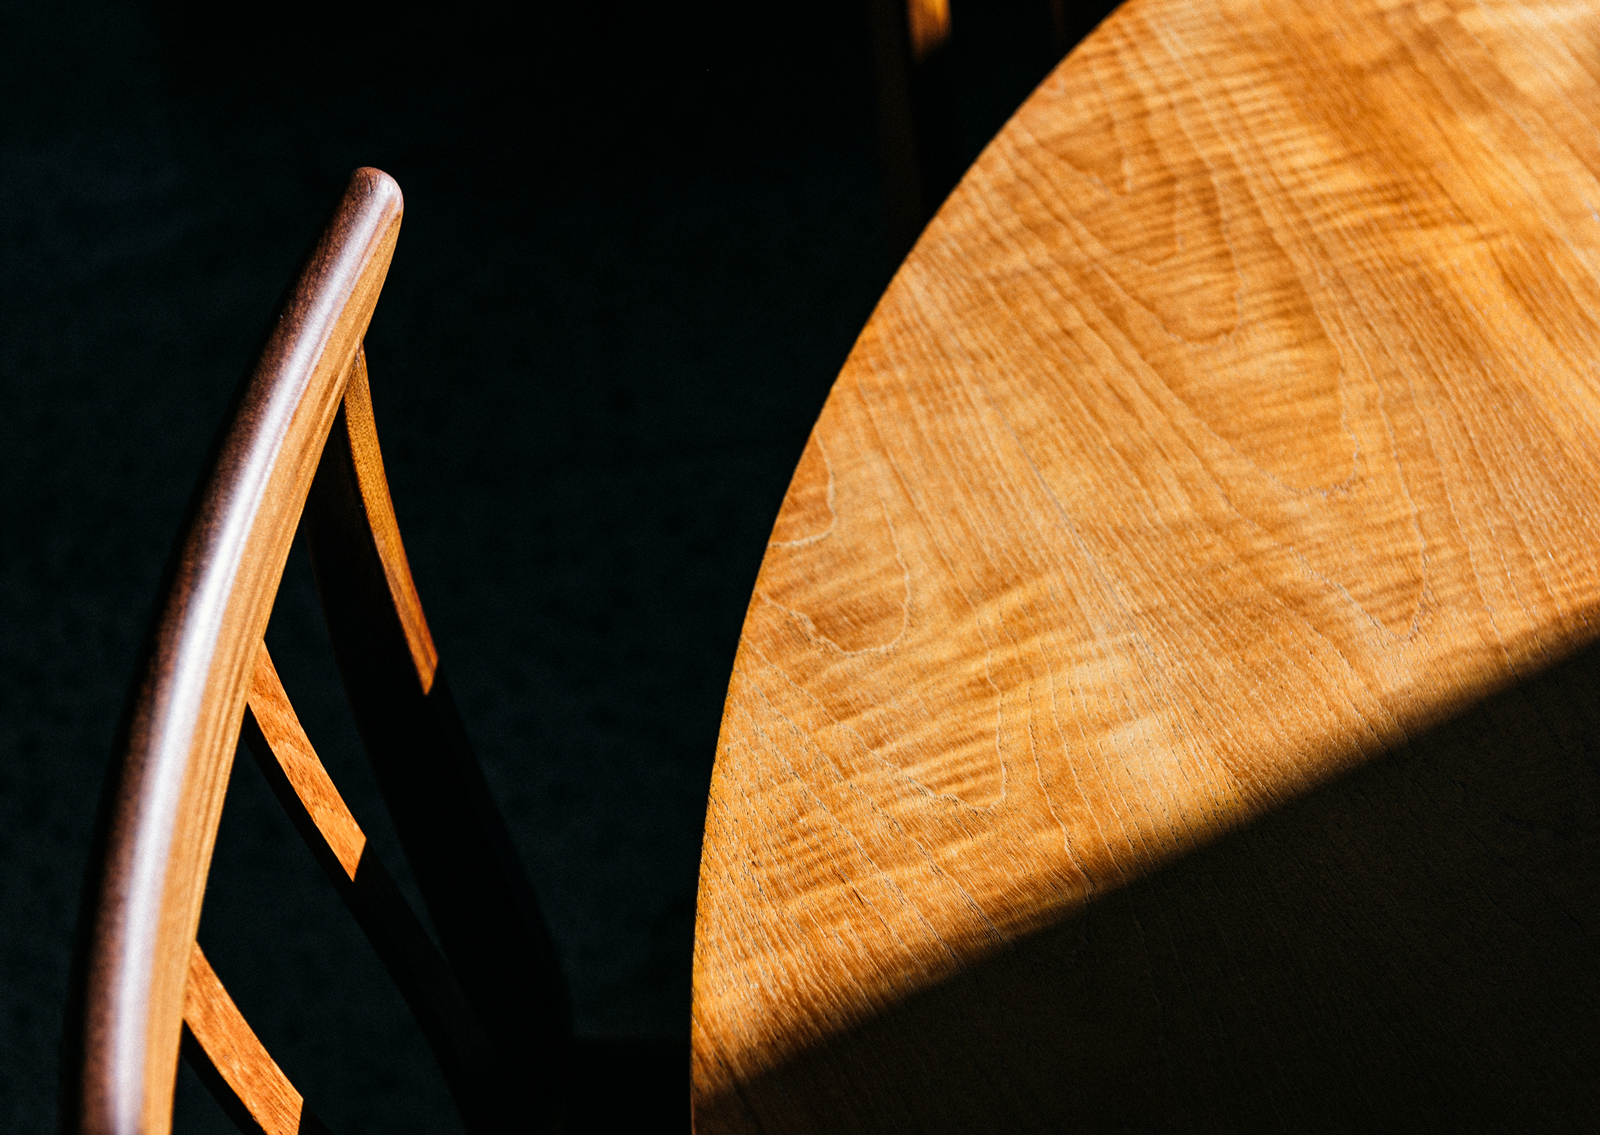 Keith and Sandy branding – dramatic close up of warm toned wooden table and chair